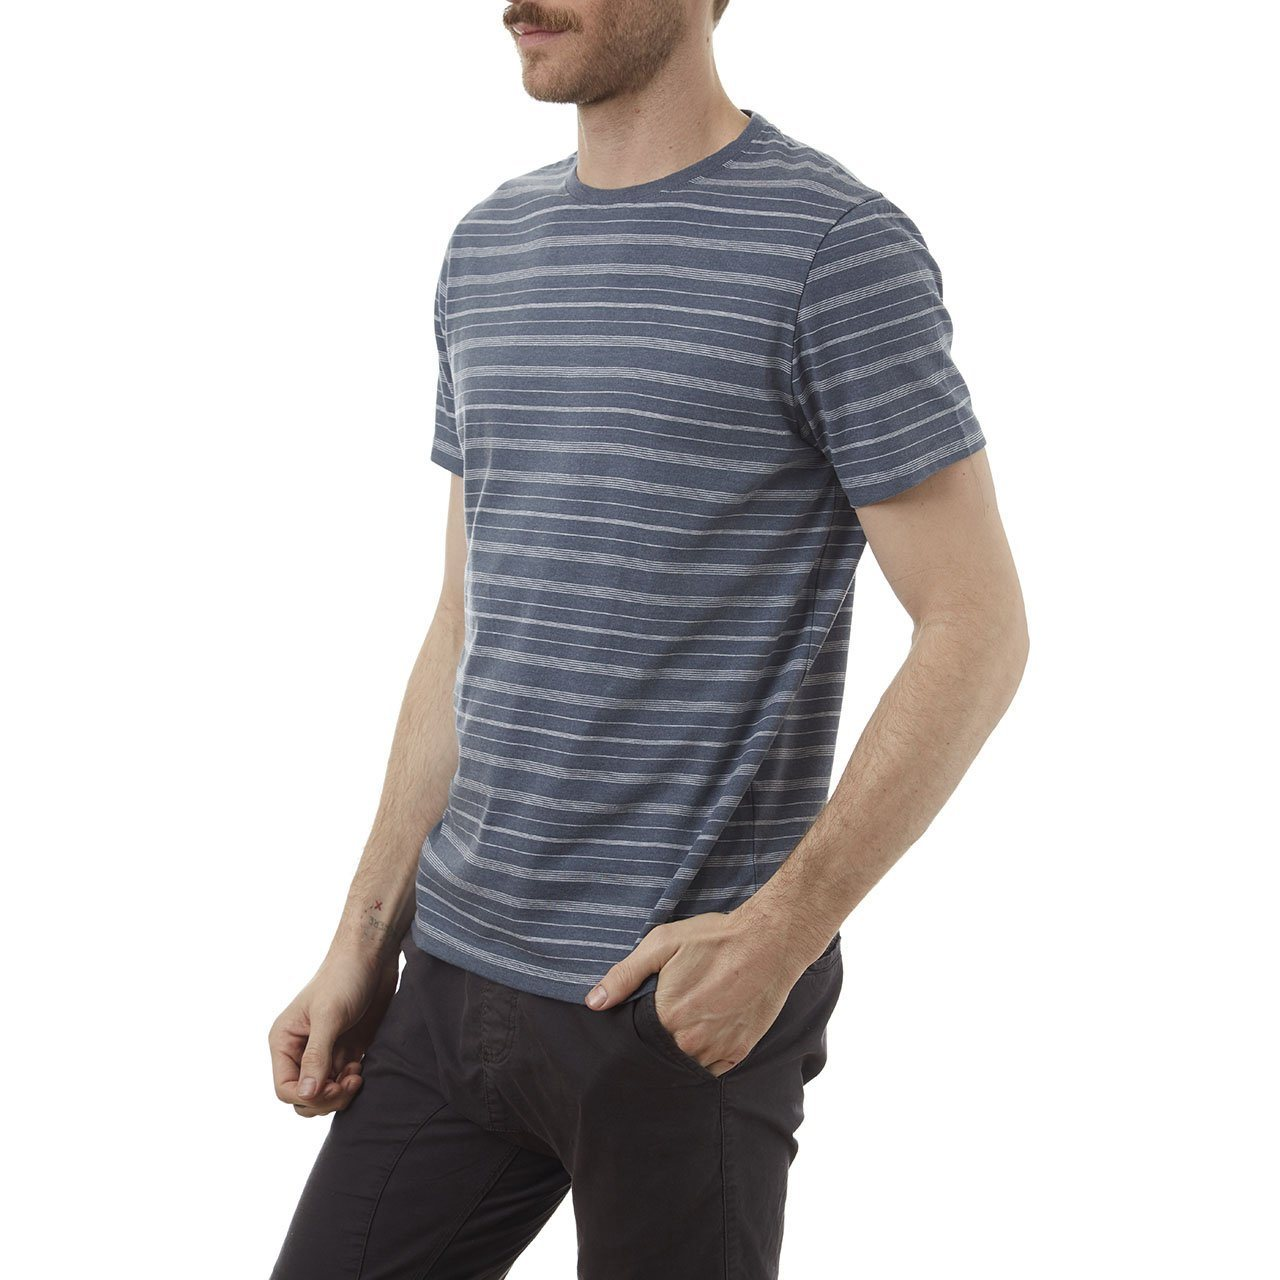 Short Sleeve Tee - Oscar Striped Tee